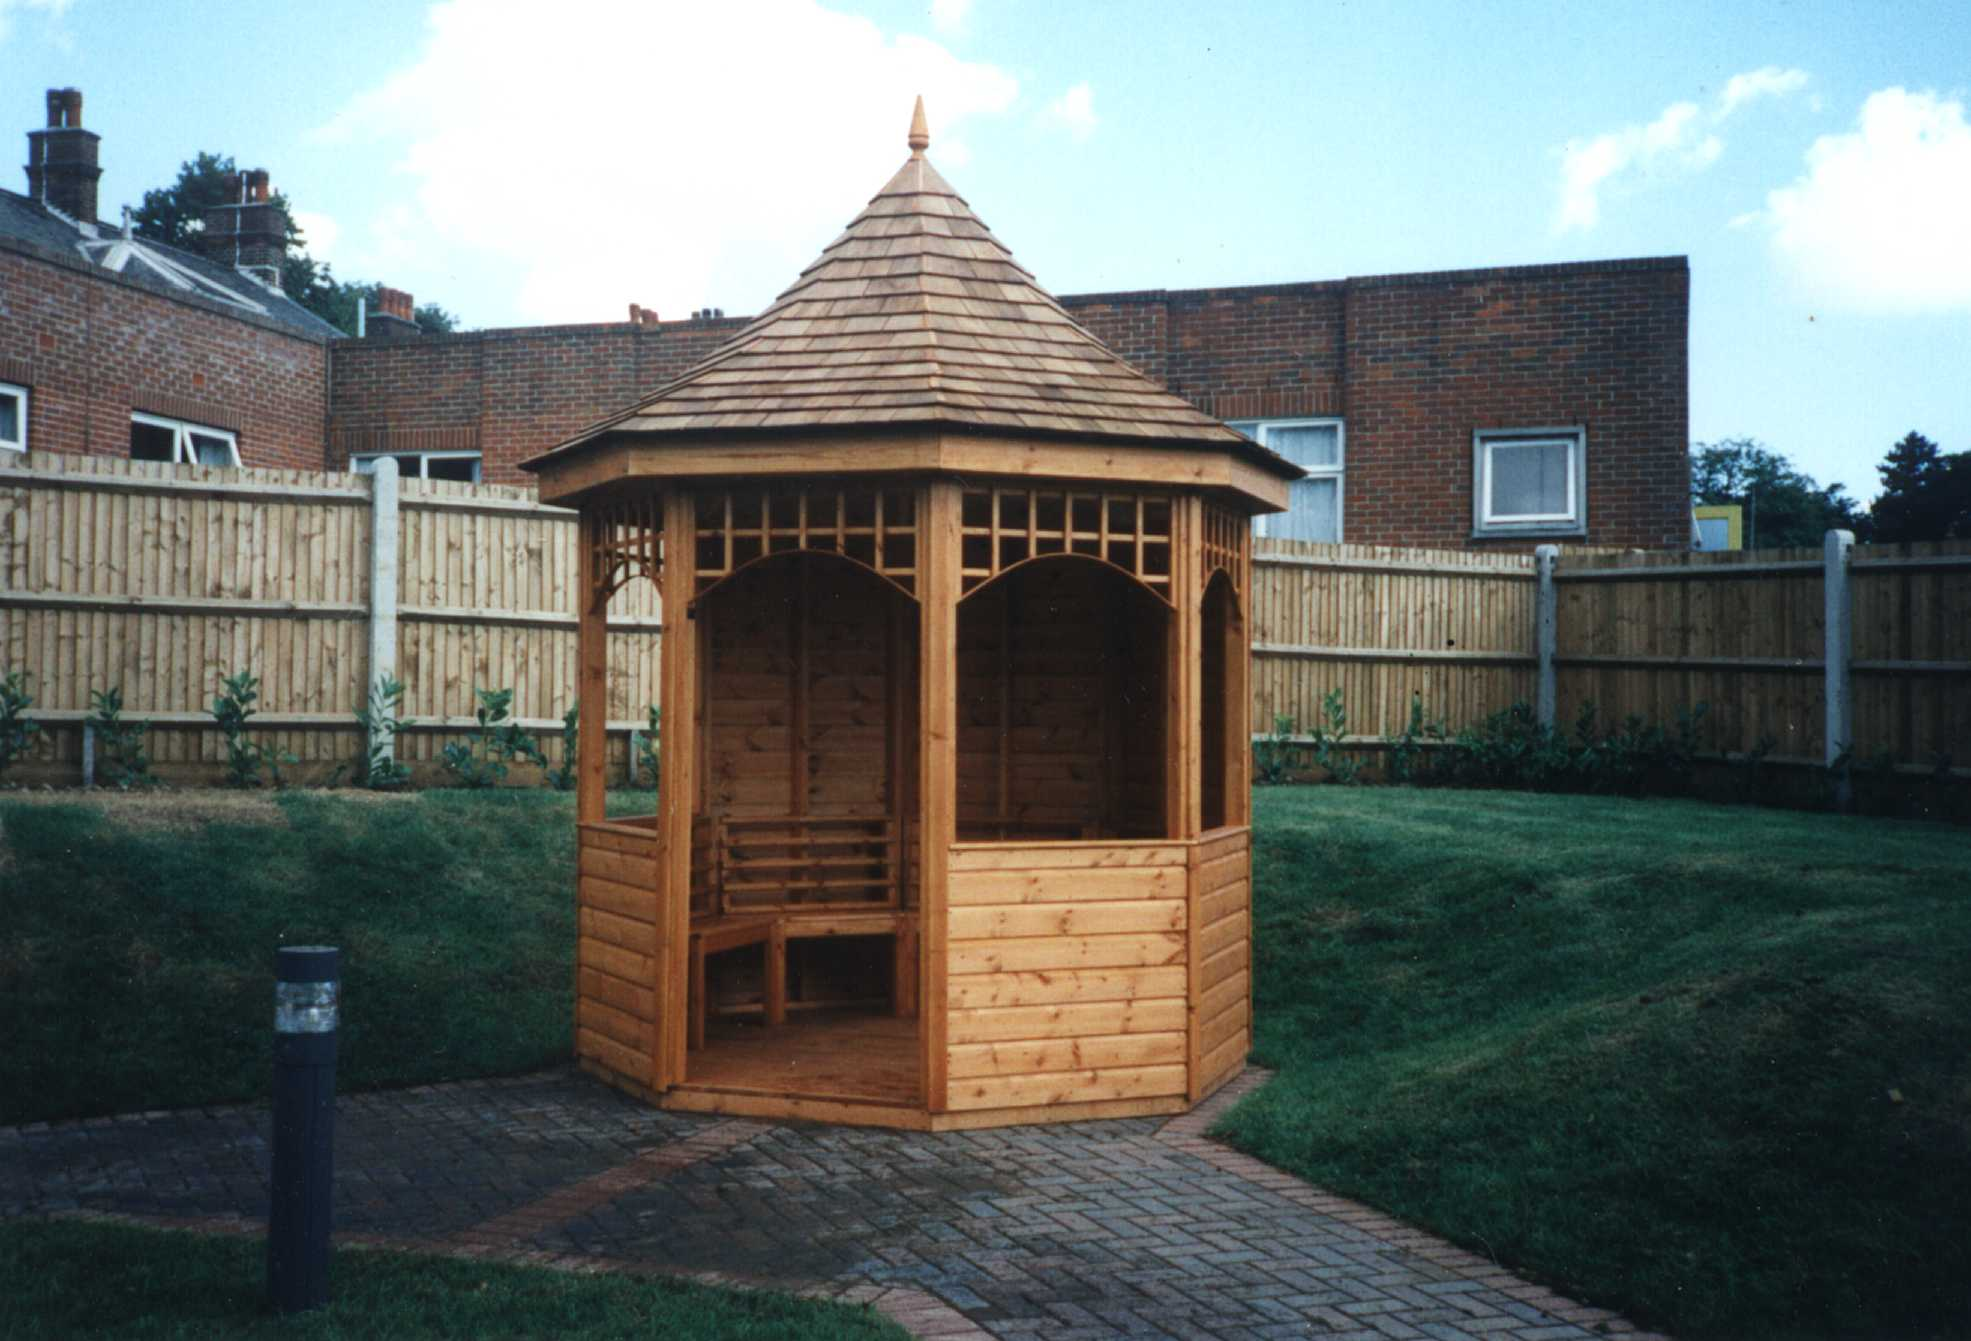 Click to enlarge image 010 Open Gazebo 2.0x2.0-min.jpg